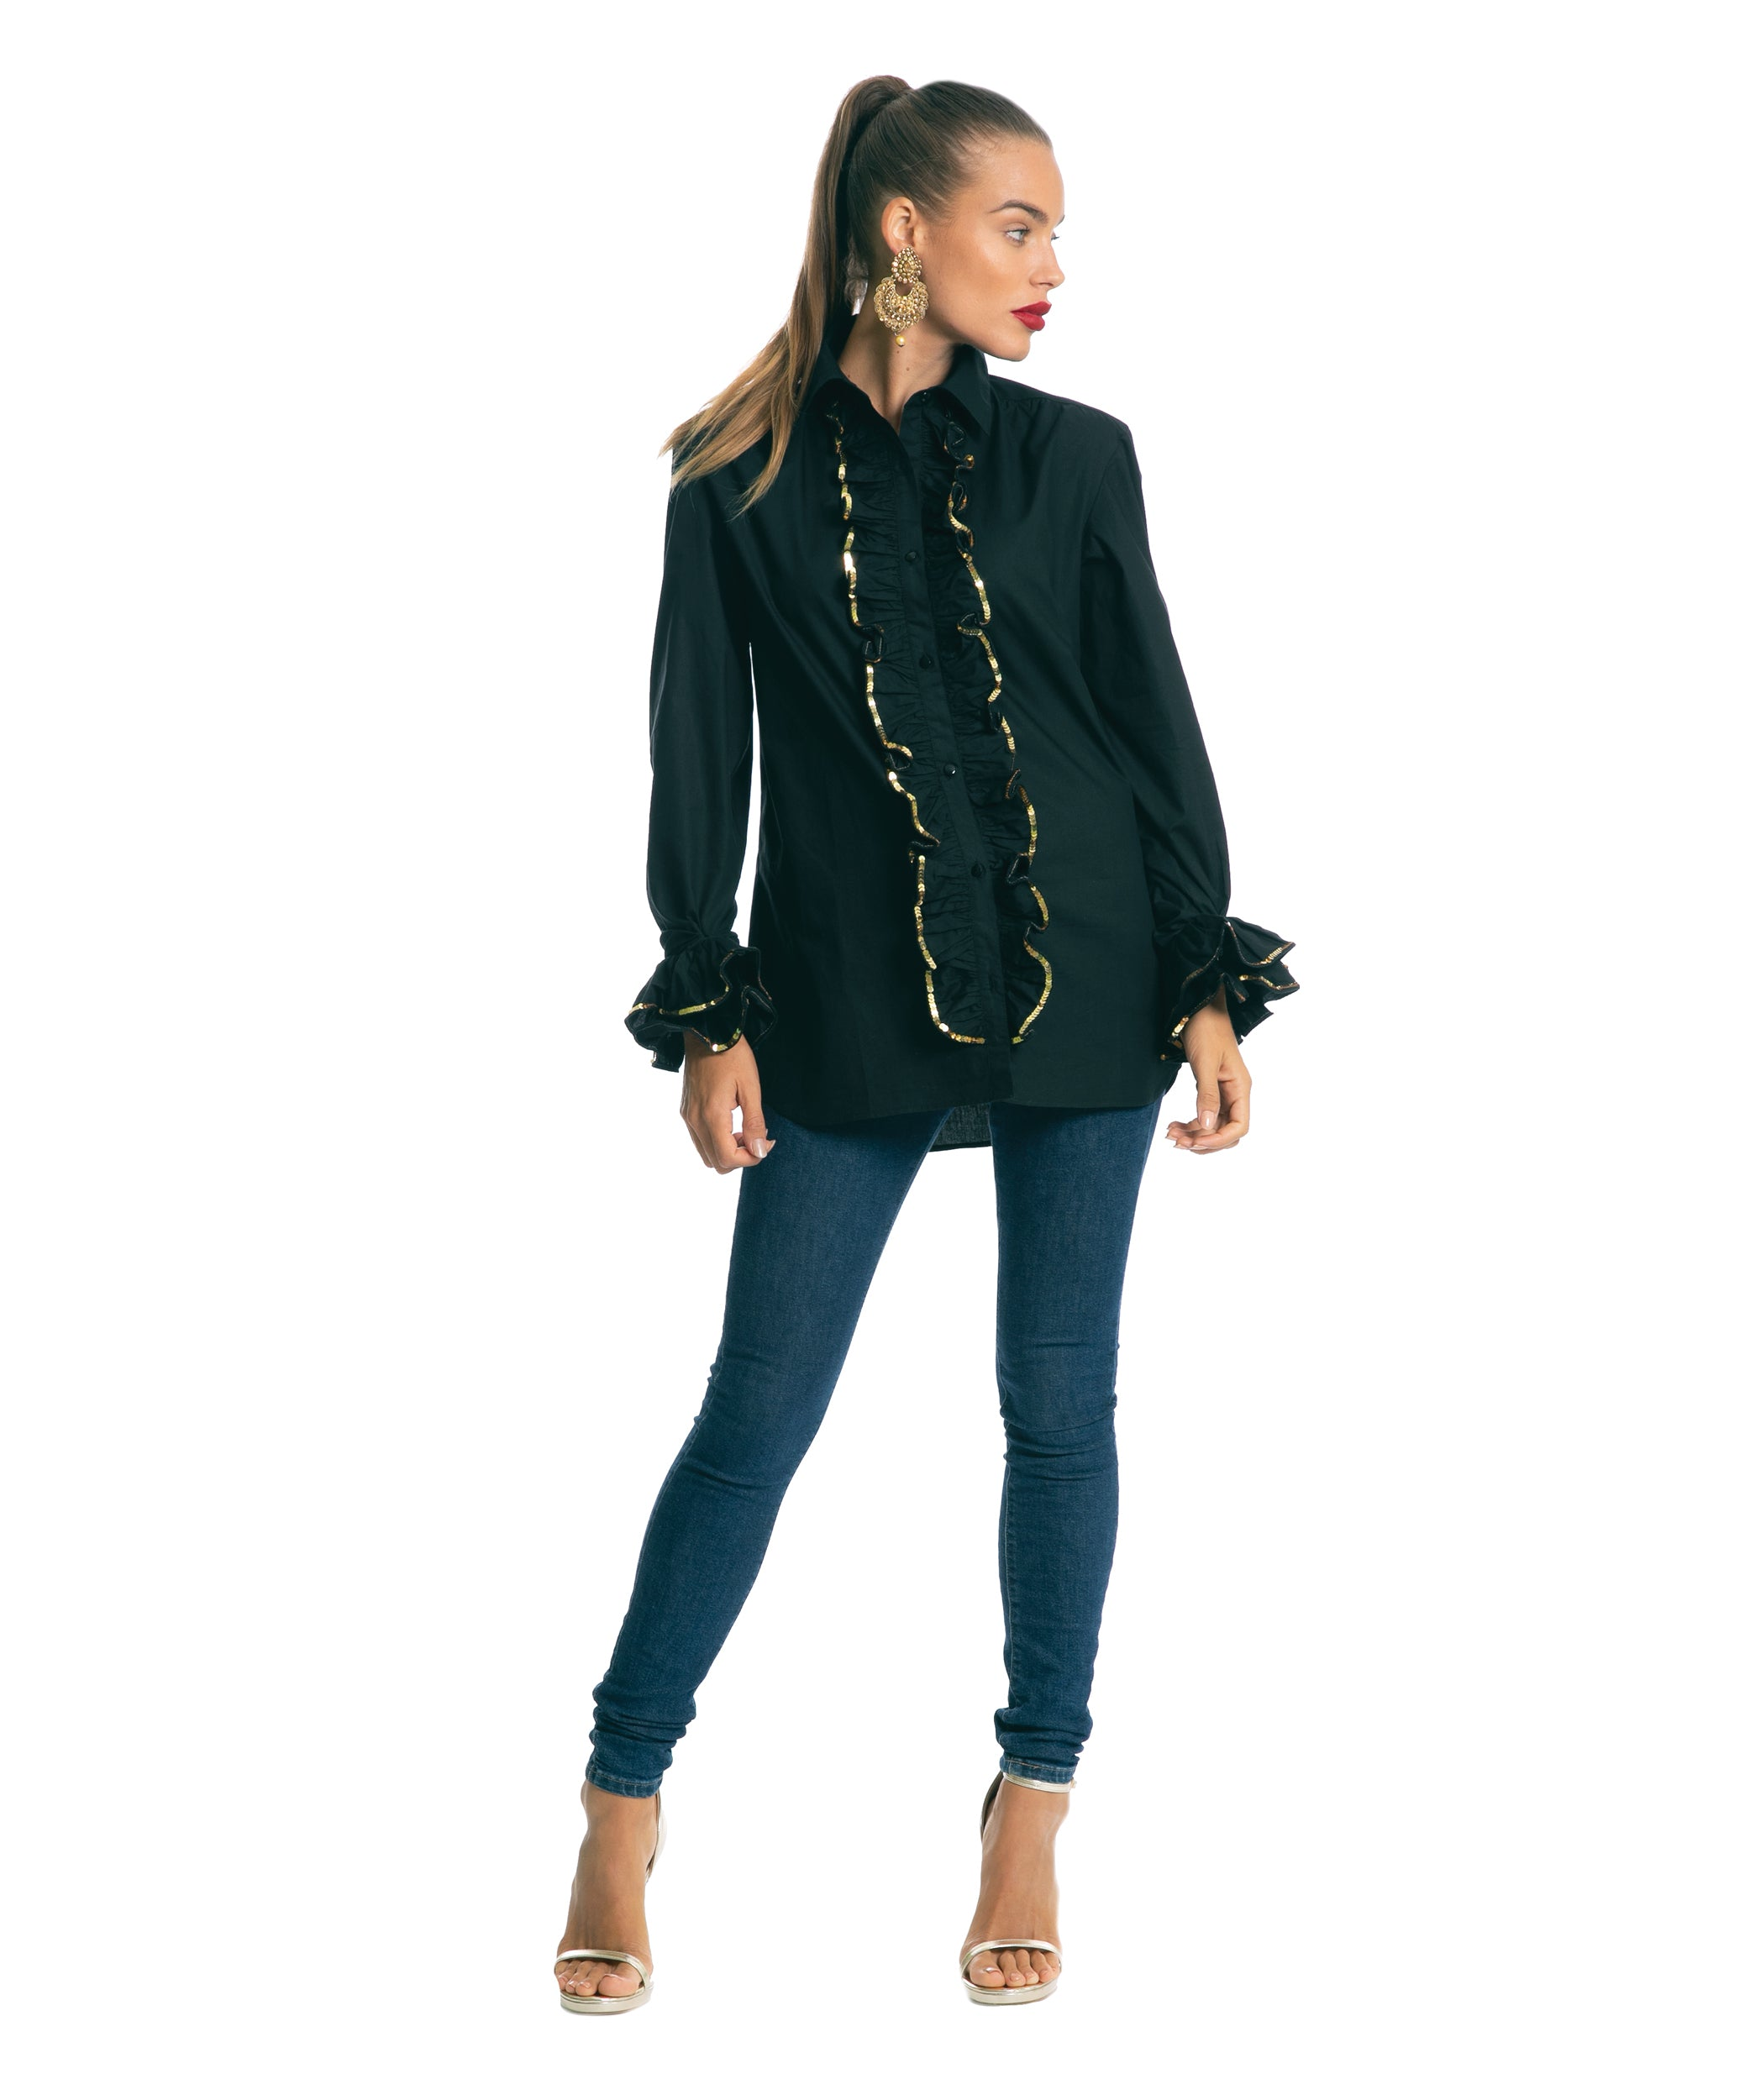 The Black Sequinned Ruffle Shirt by Bonita Kaftans